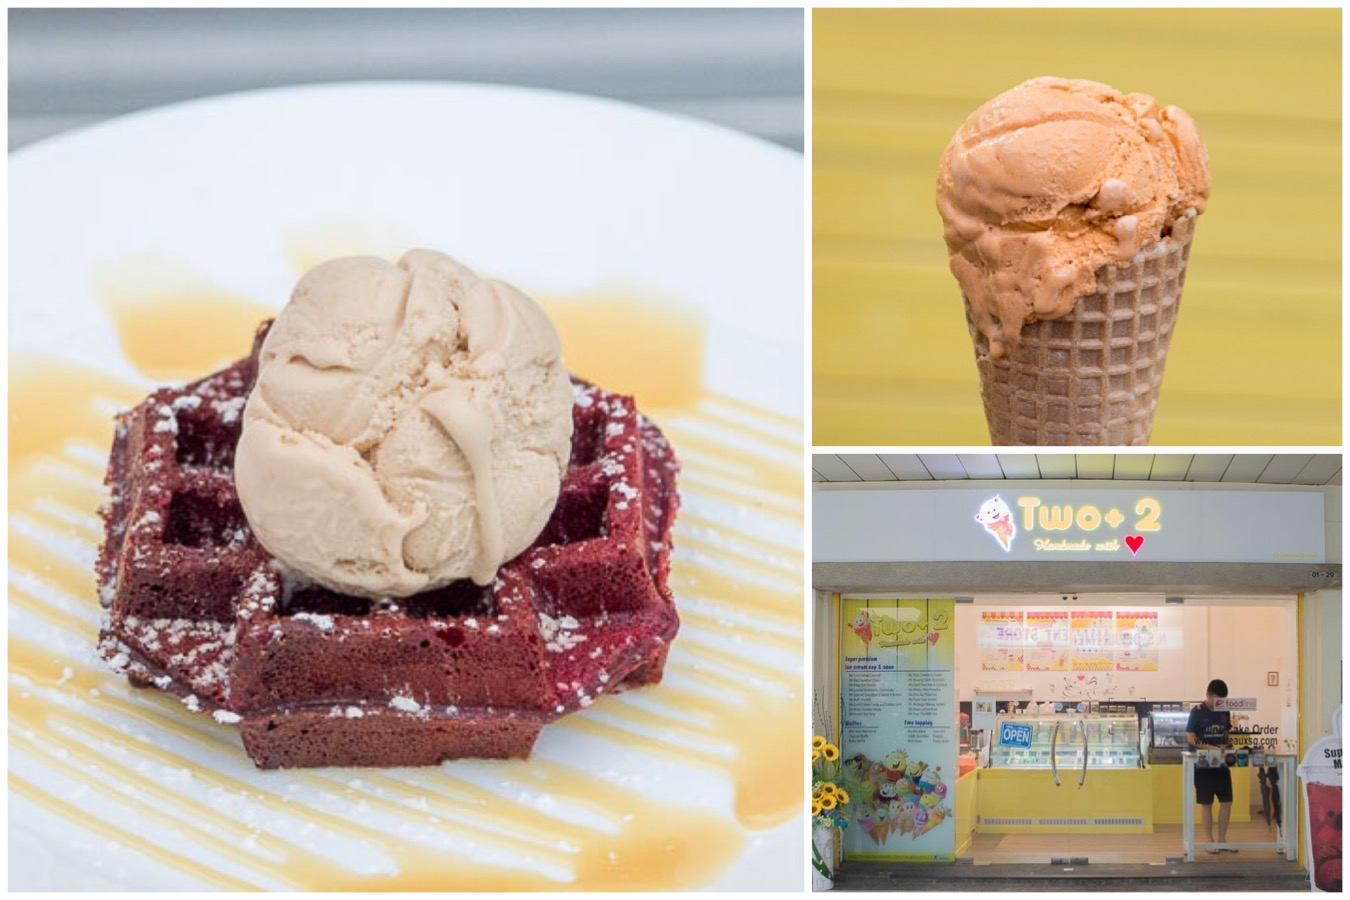 Two+2 – Ice-Cream & Waffles Café With Free Toppings, At Choa Chu Kang Sunshine Place